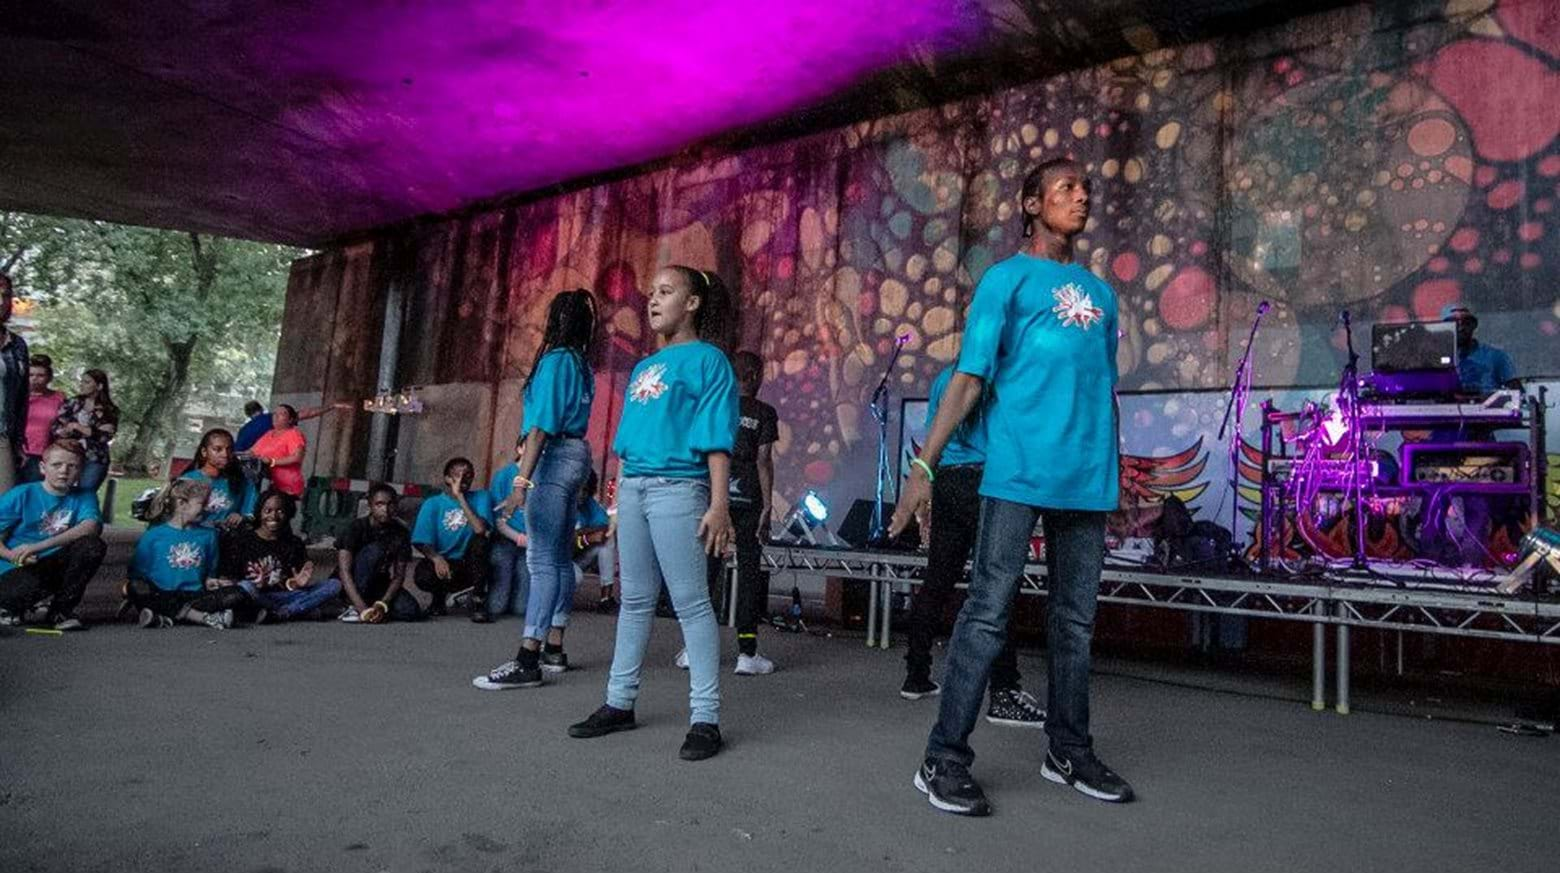 Cultural performances in Thamesmead